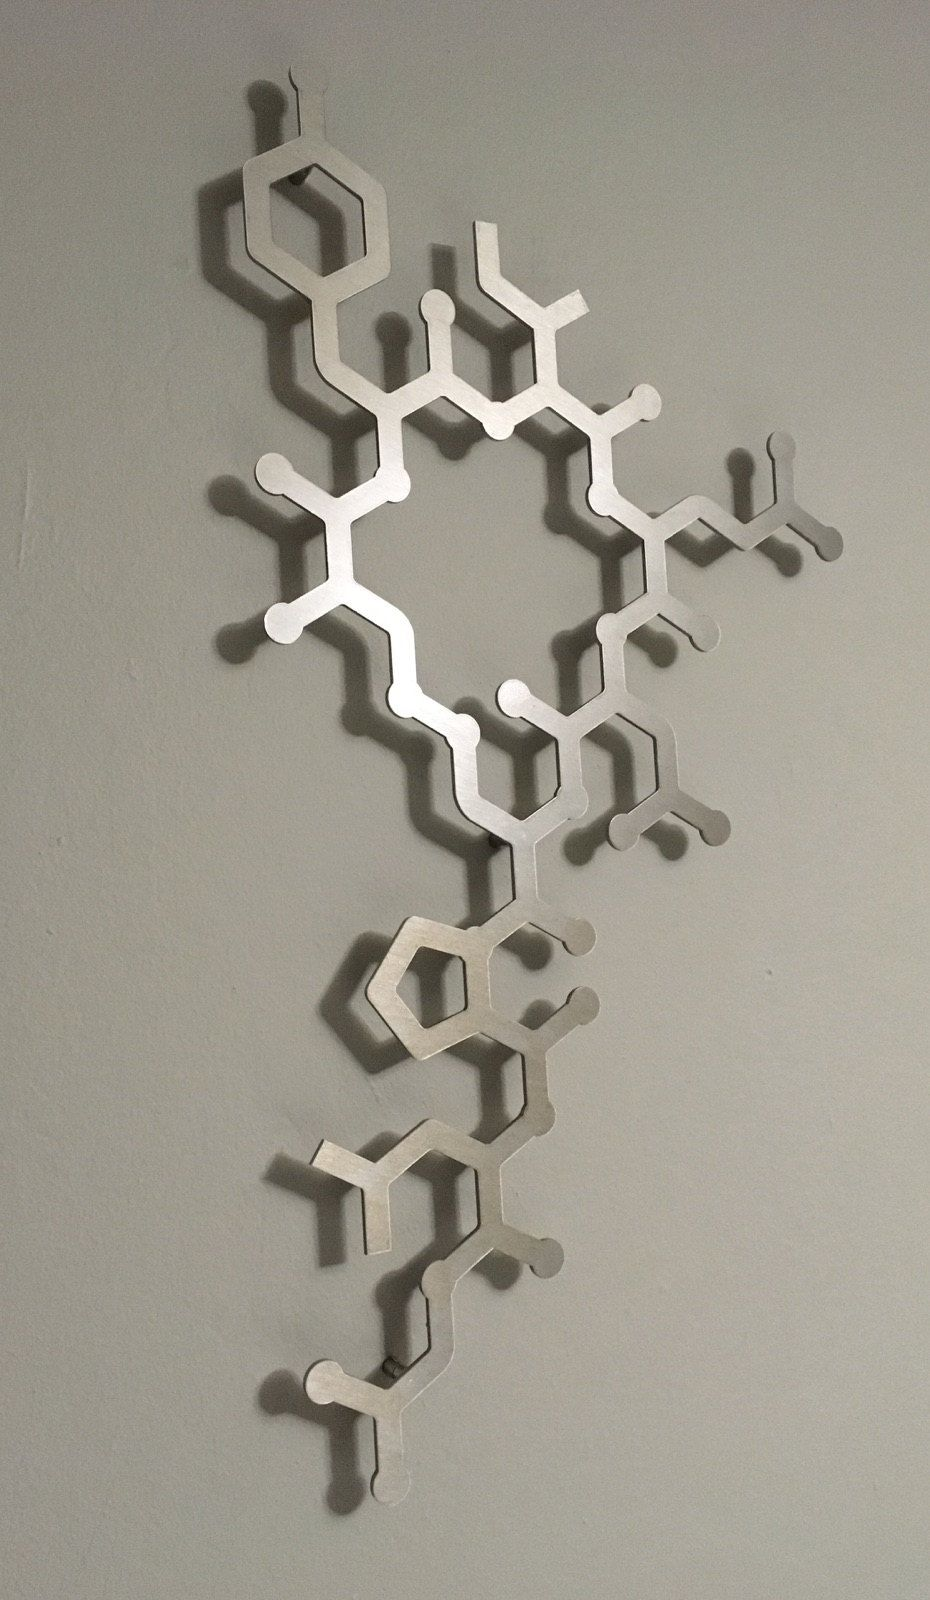 Oxytocin Molecule 3d Metal Wall Art Sculpture By Arte Metal Visit Us At Www Arteandmetal Com Molecule Art Wall Sculpture Art 3d Metal Wall Art